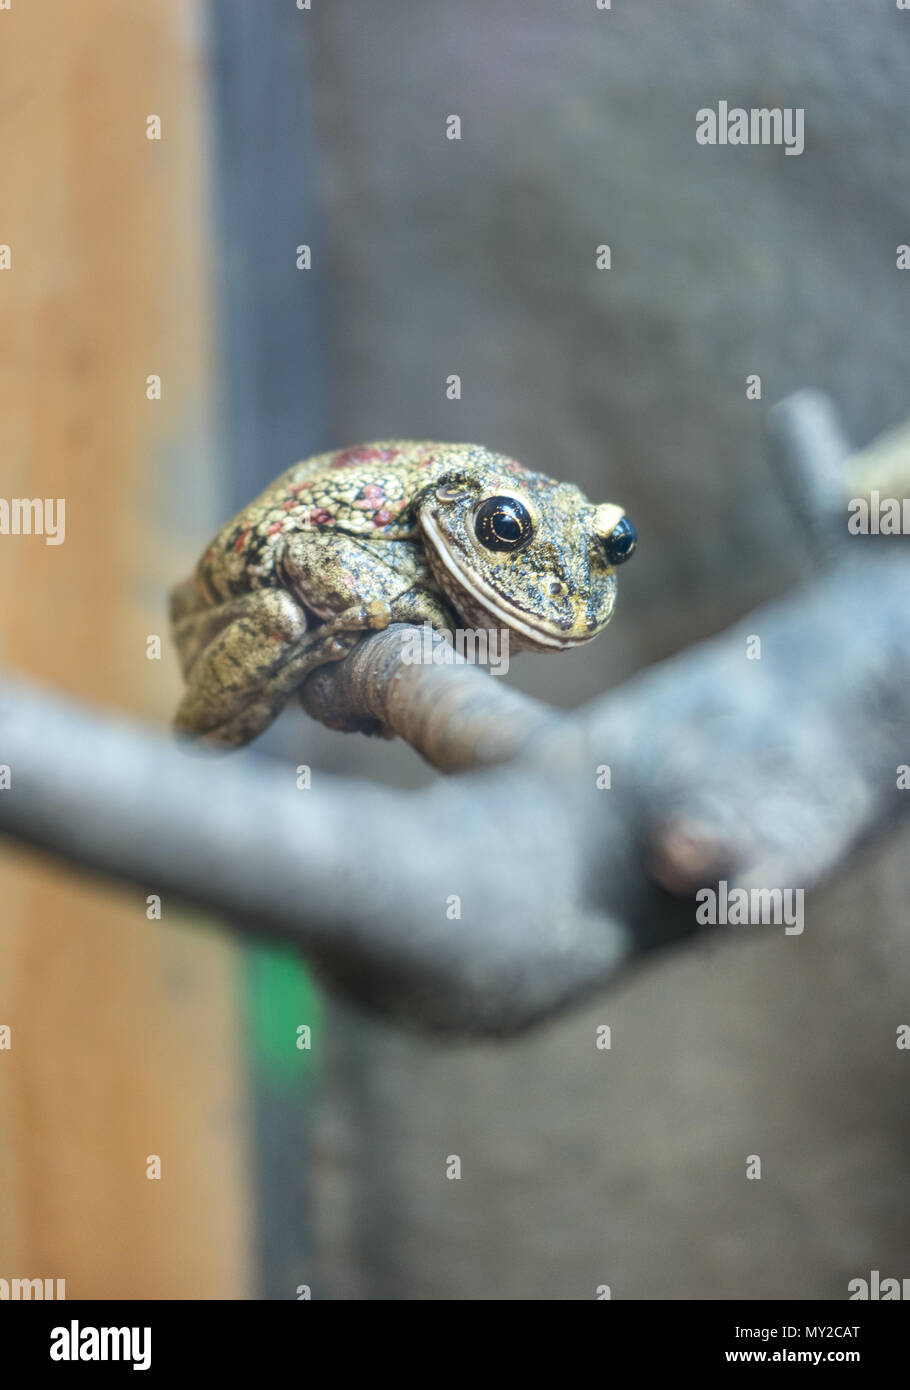 Beautiful tree frog sitting on a branch - Stock Image